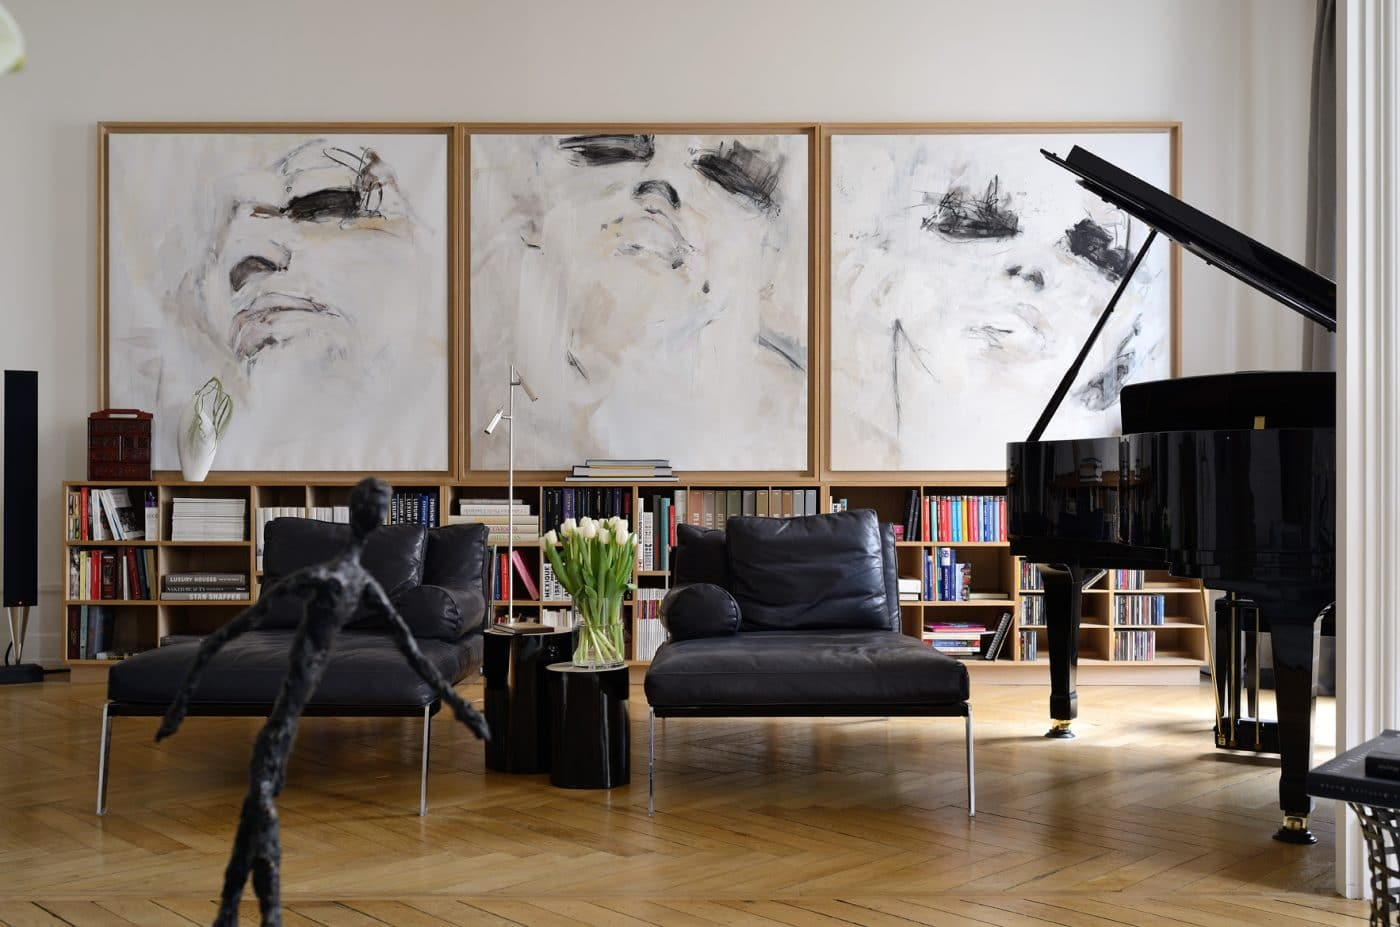 appartement luxe agence magnin du sauzey20140214 0077 philippe magnin du sauzey. Black Bedroom Furniture Sets. Home Design Ideas